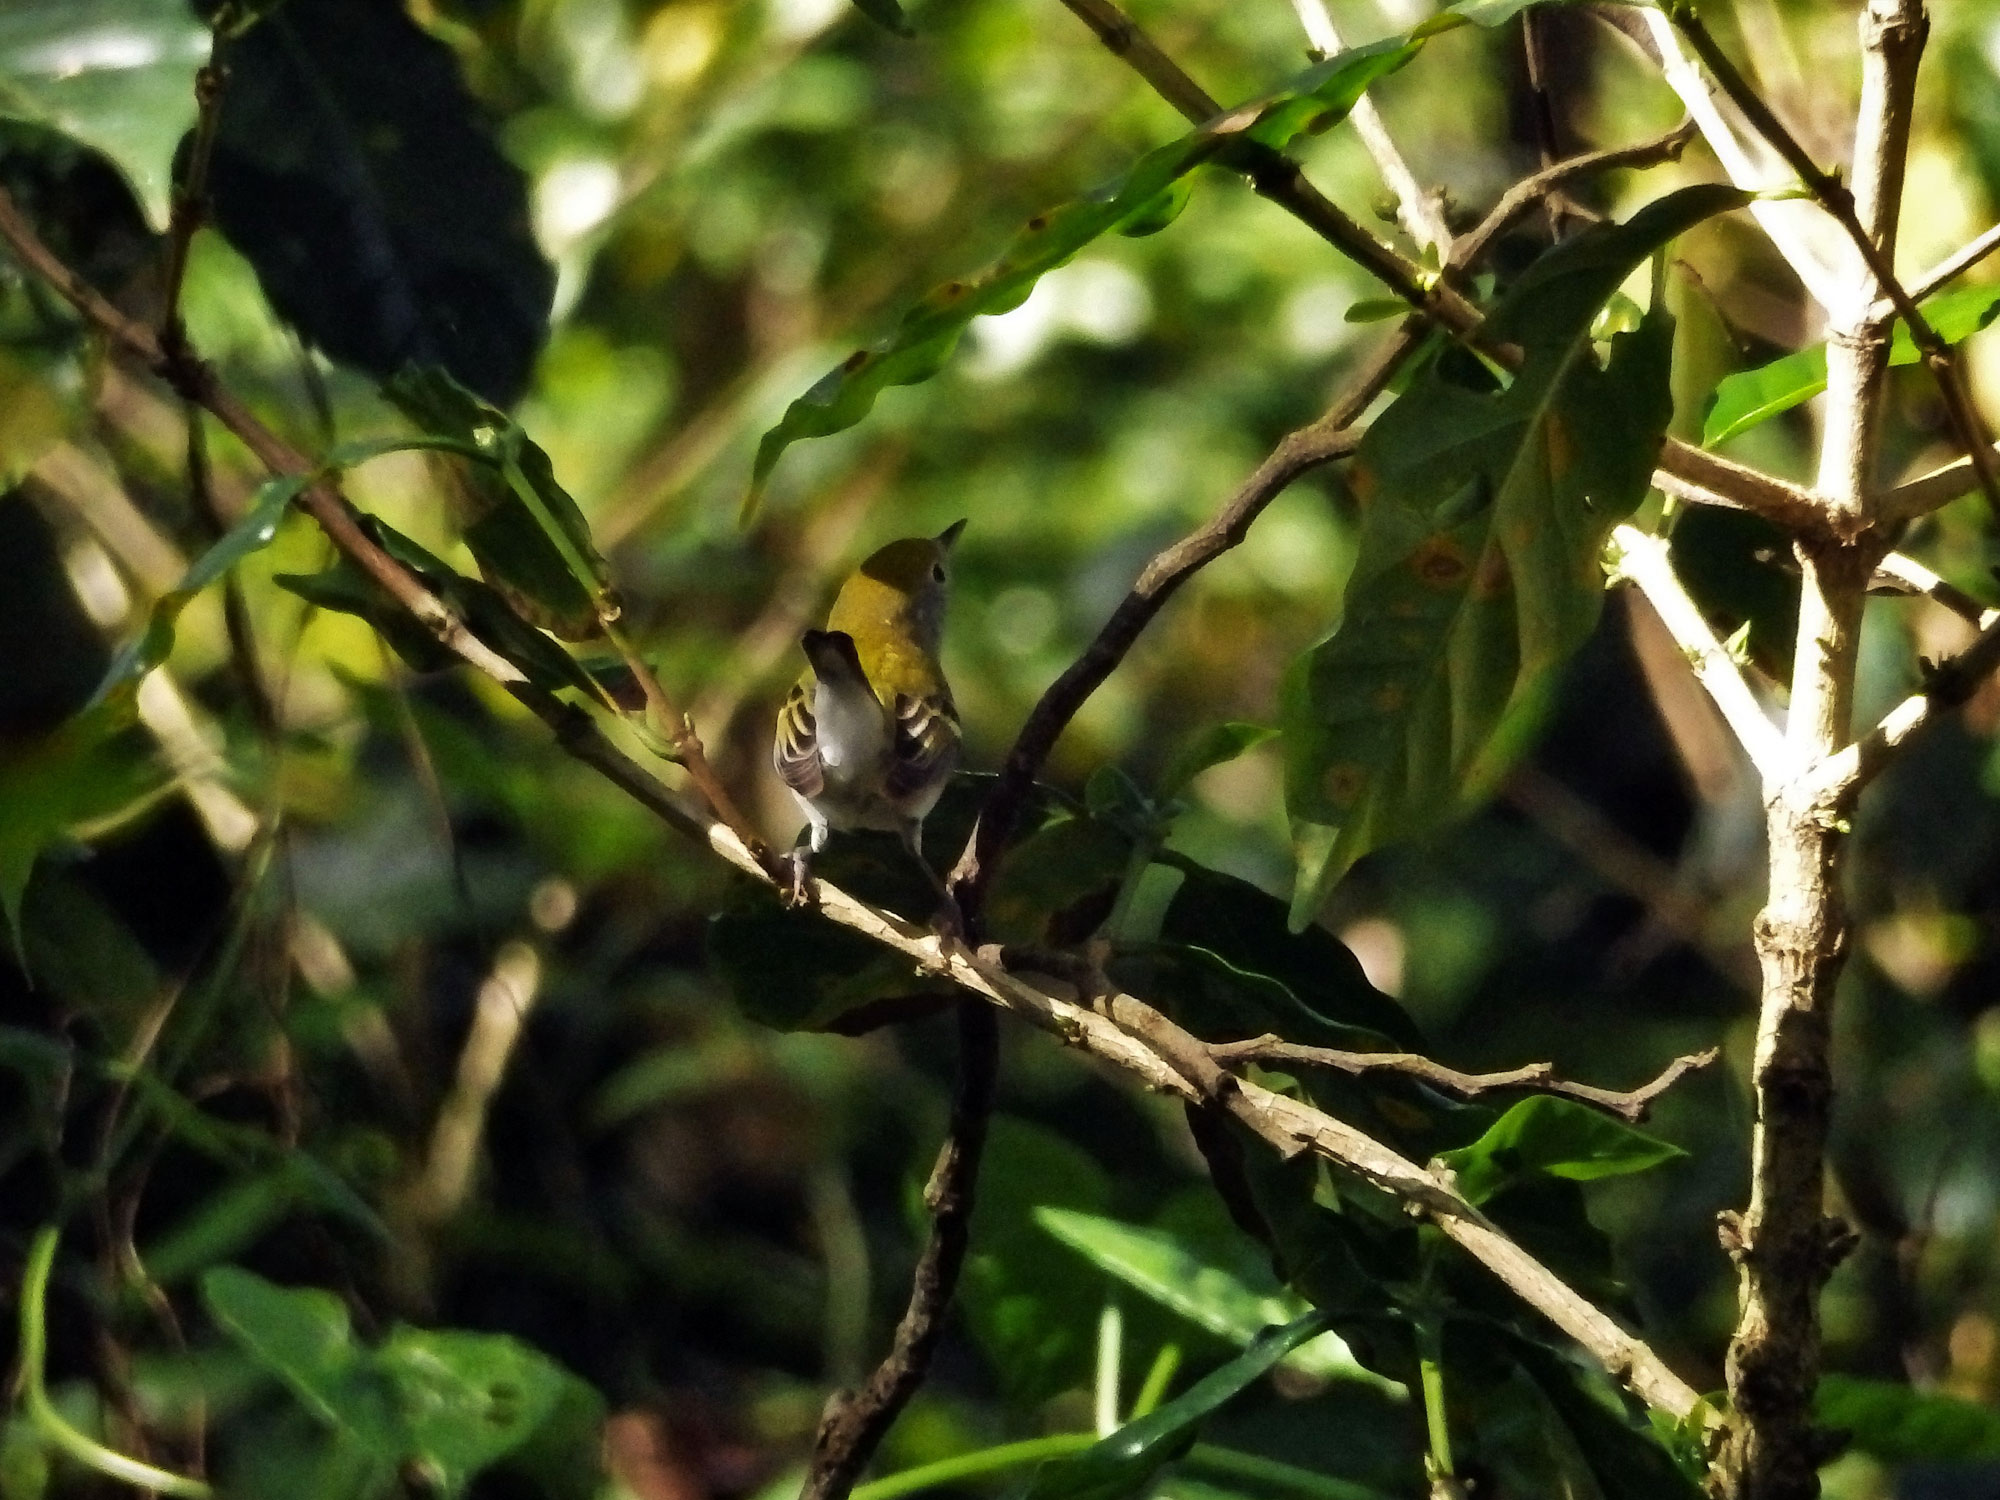 small olive-backed bird on branch in coffee shrub